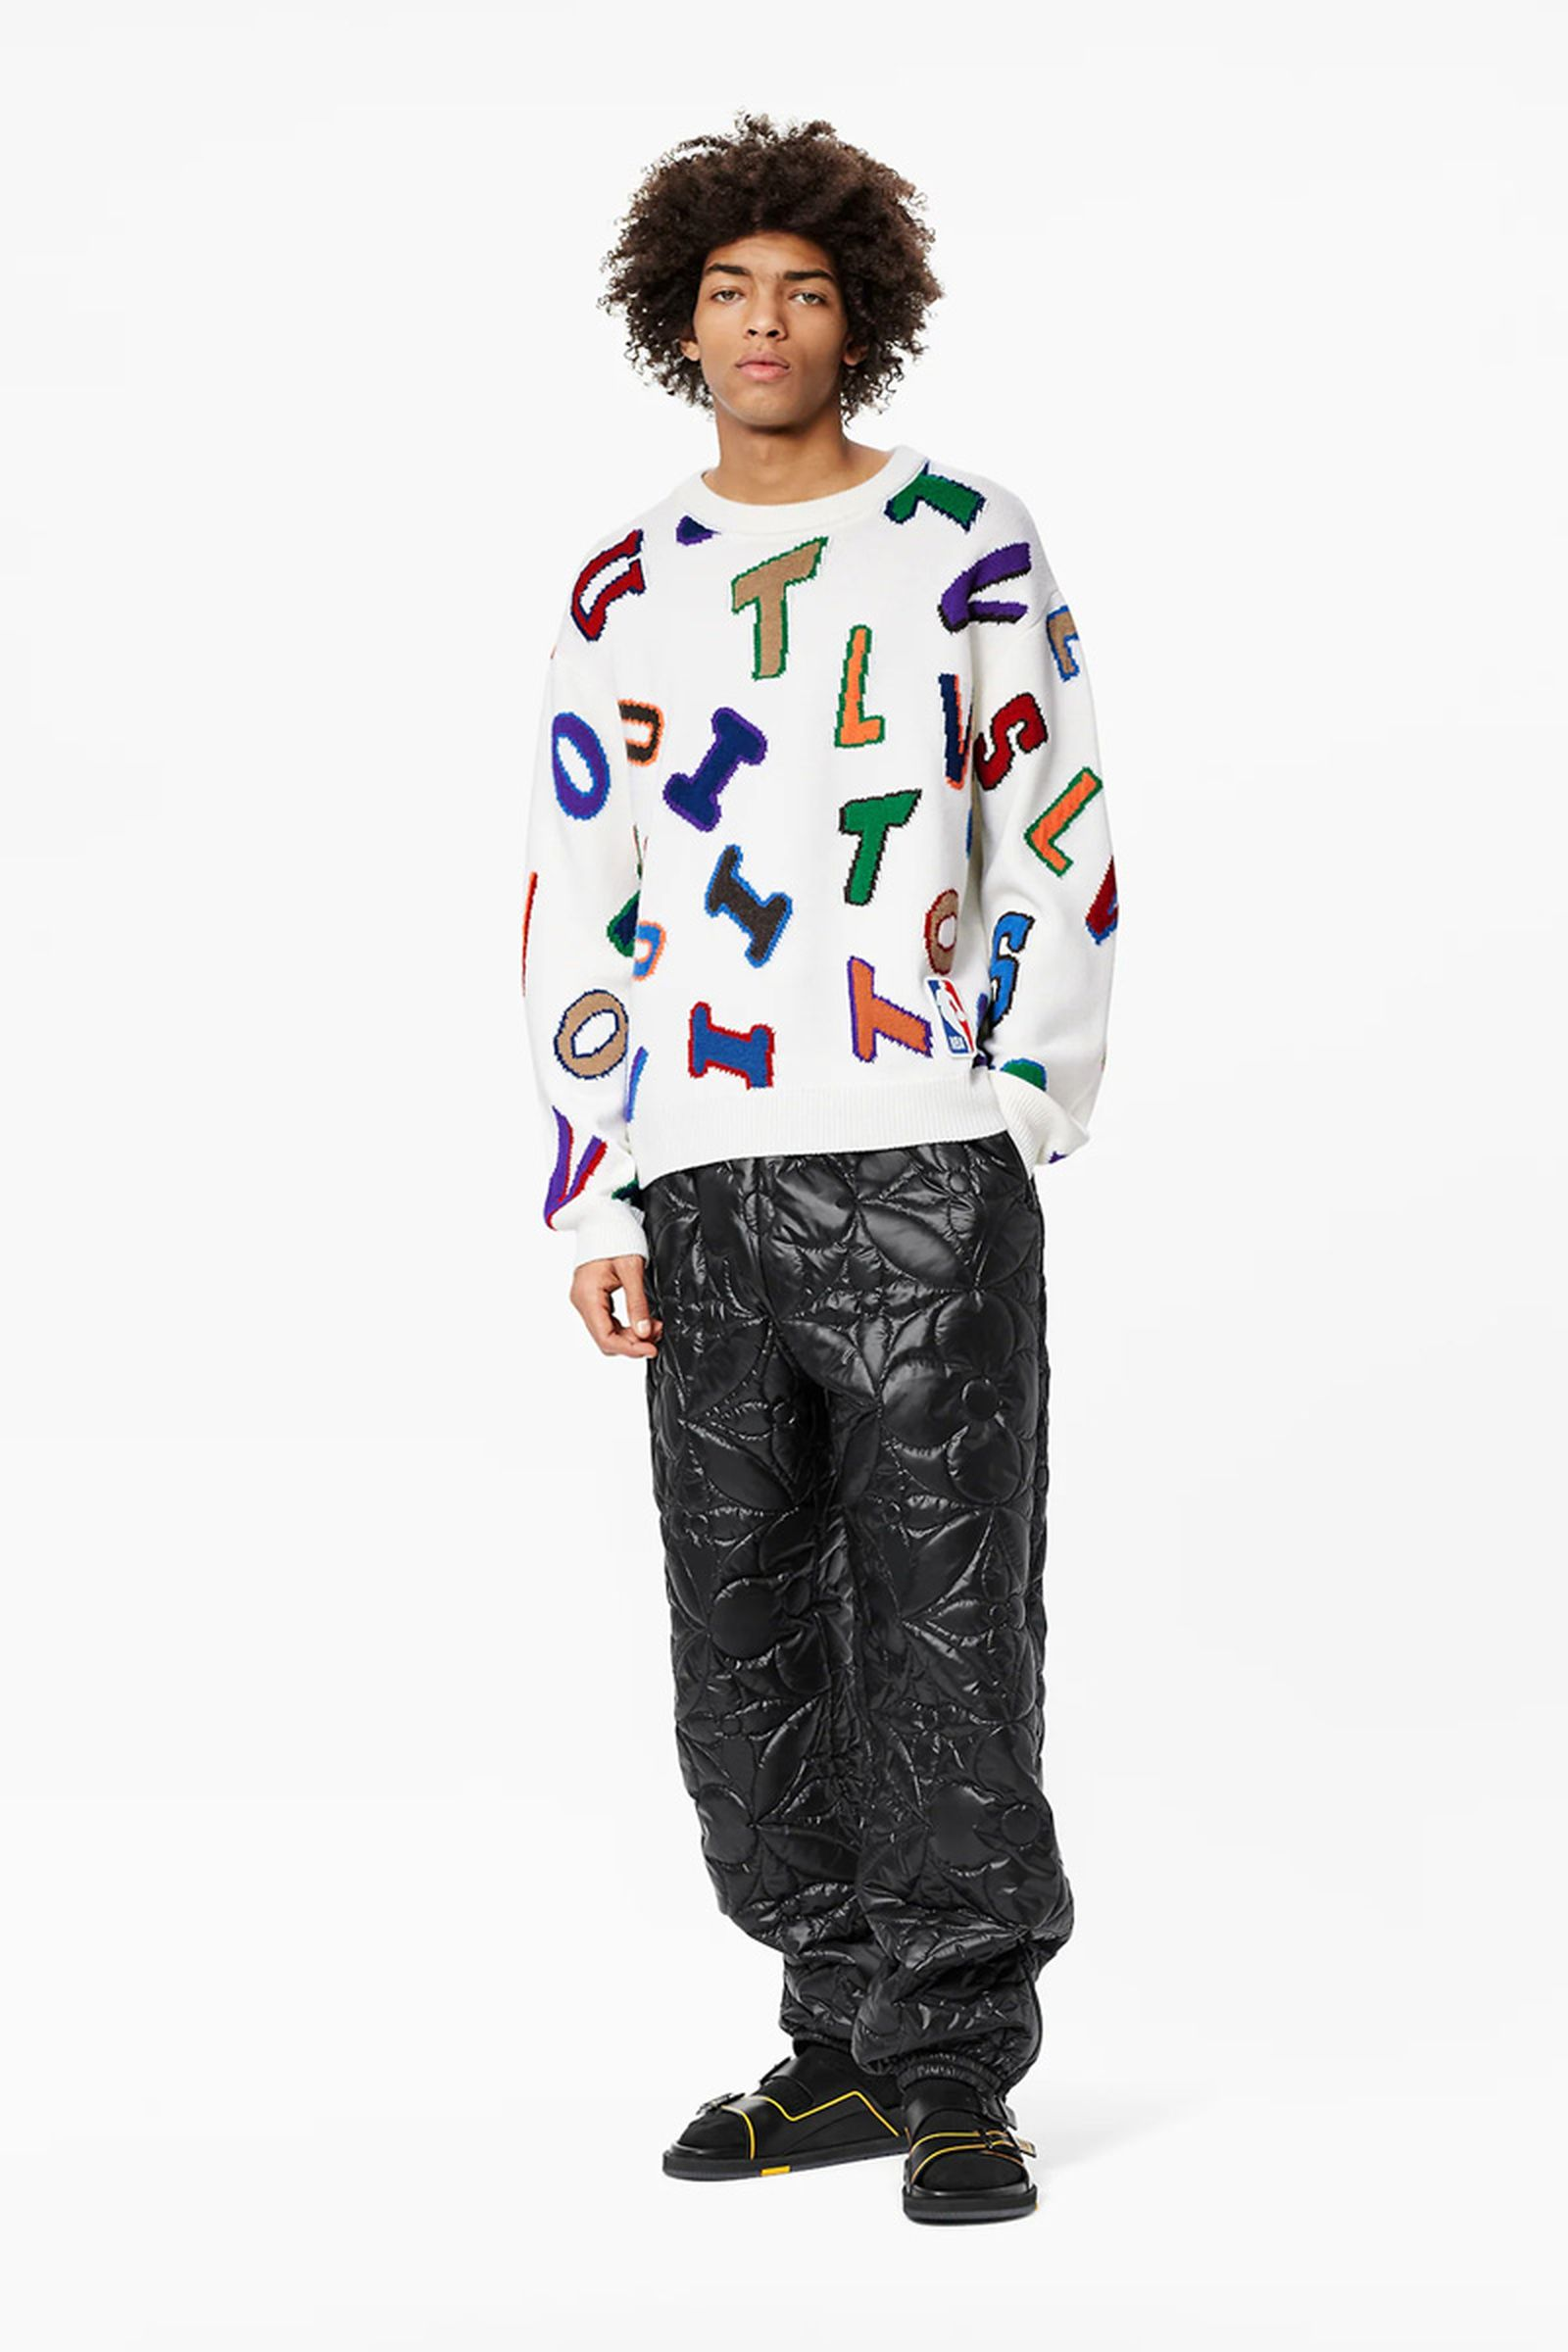 louis-vuitton-nba-collection-2-release-date-price-09